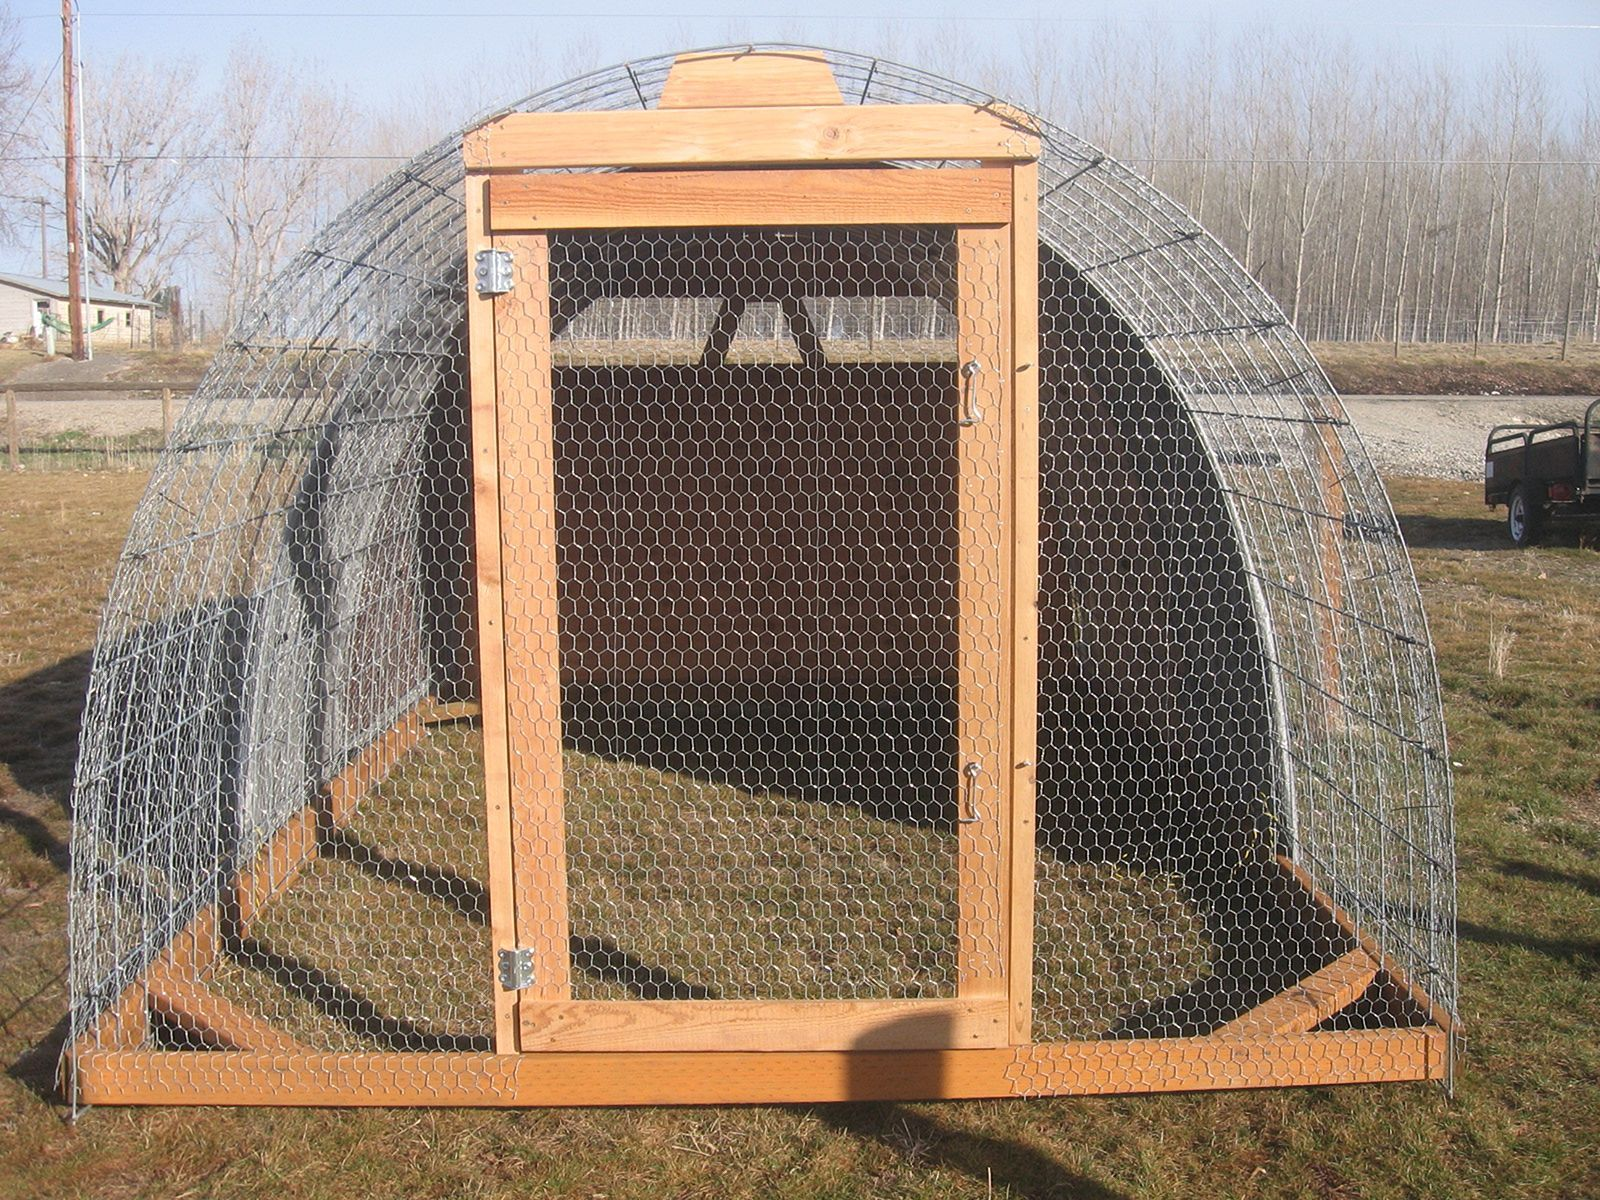 httpss media cache ak0pinimgcomoriginals2e - Chicken Coop Design Ideas